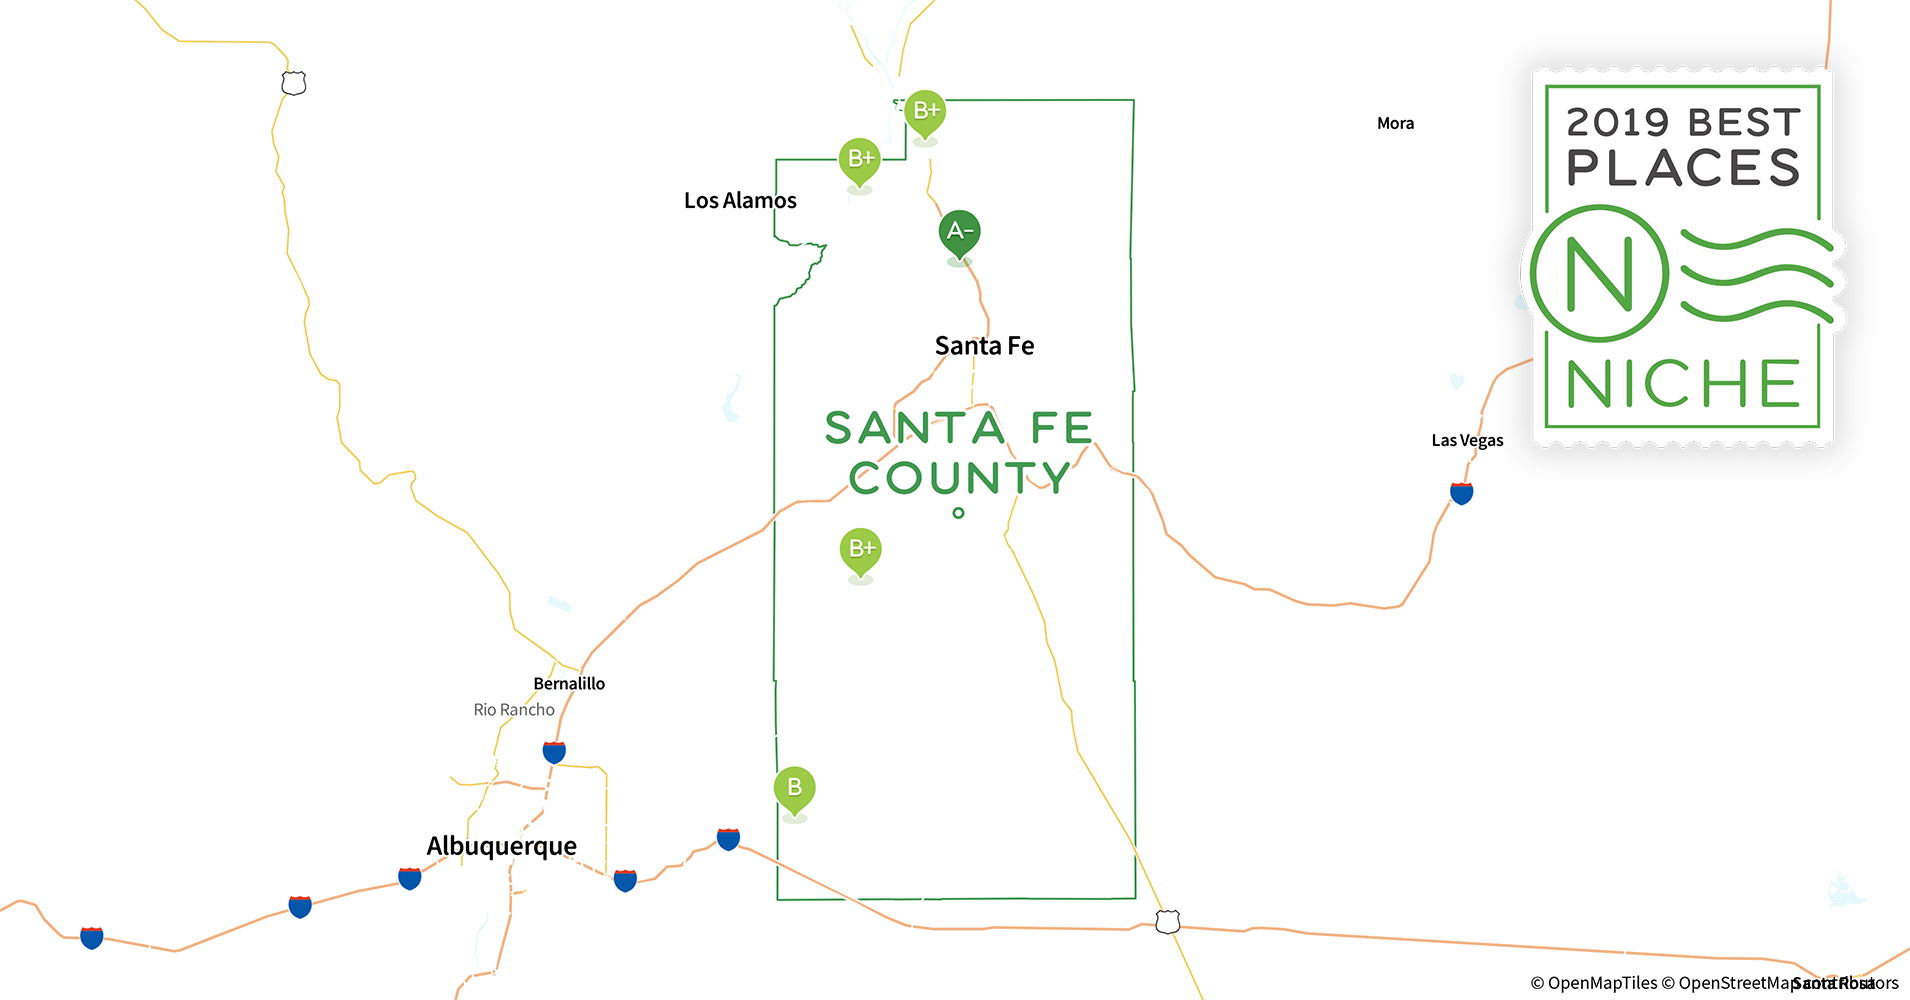 2019 Best Places to Live in Santa Fe County, NM - Niche